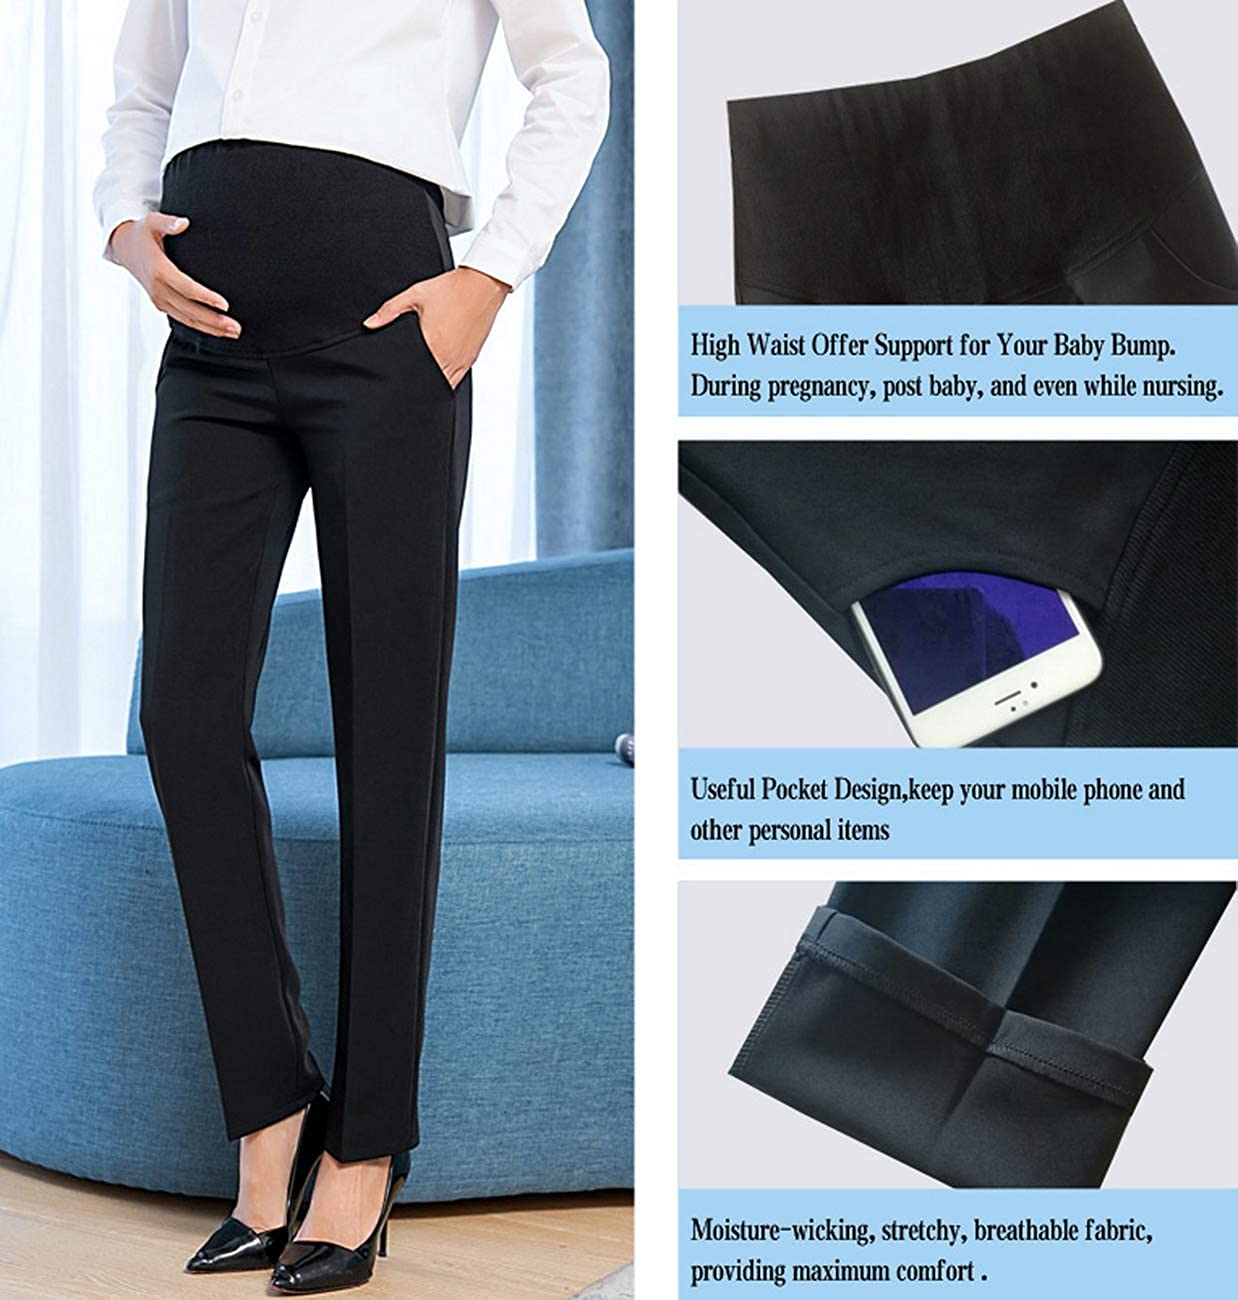 bb07f9a8e20af Foucome Maternity Work Pants Over Bump High Waist Formal Pregnancy Trousers  for Women [Updated Version 2.0] at Amazon Women's Clothing store: